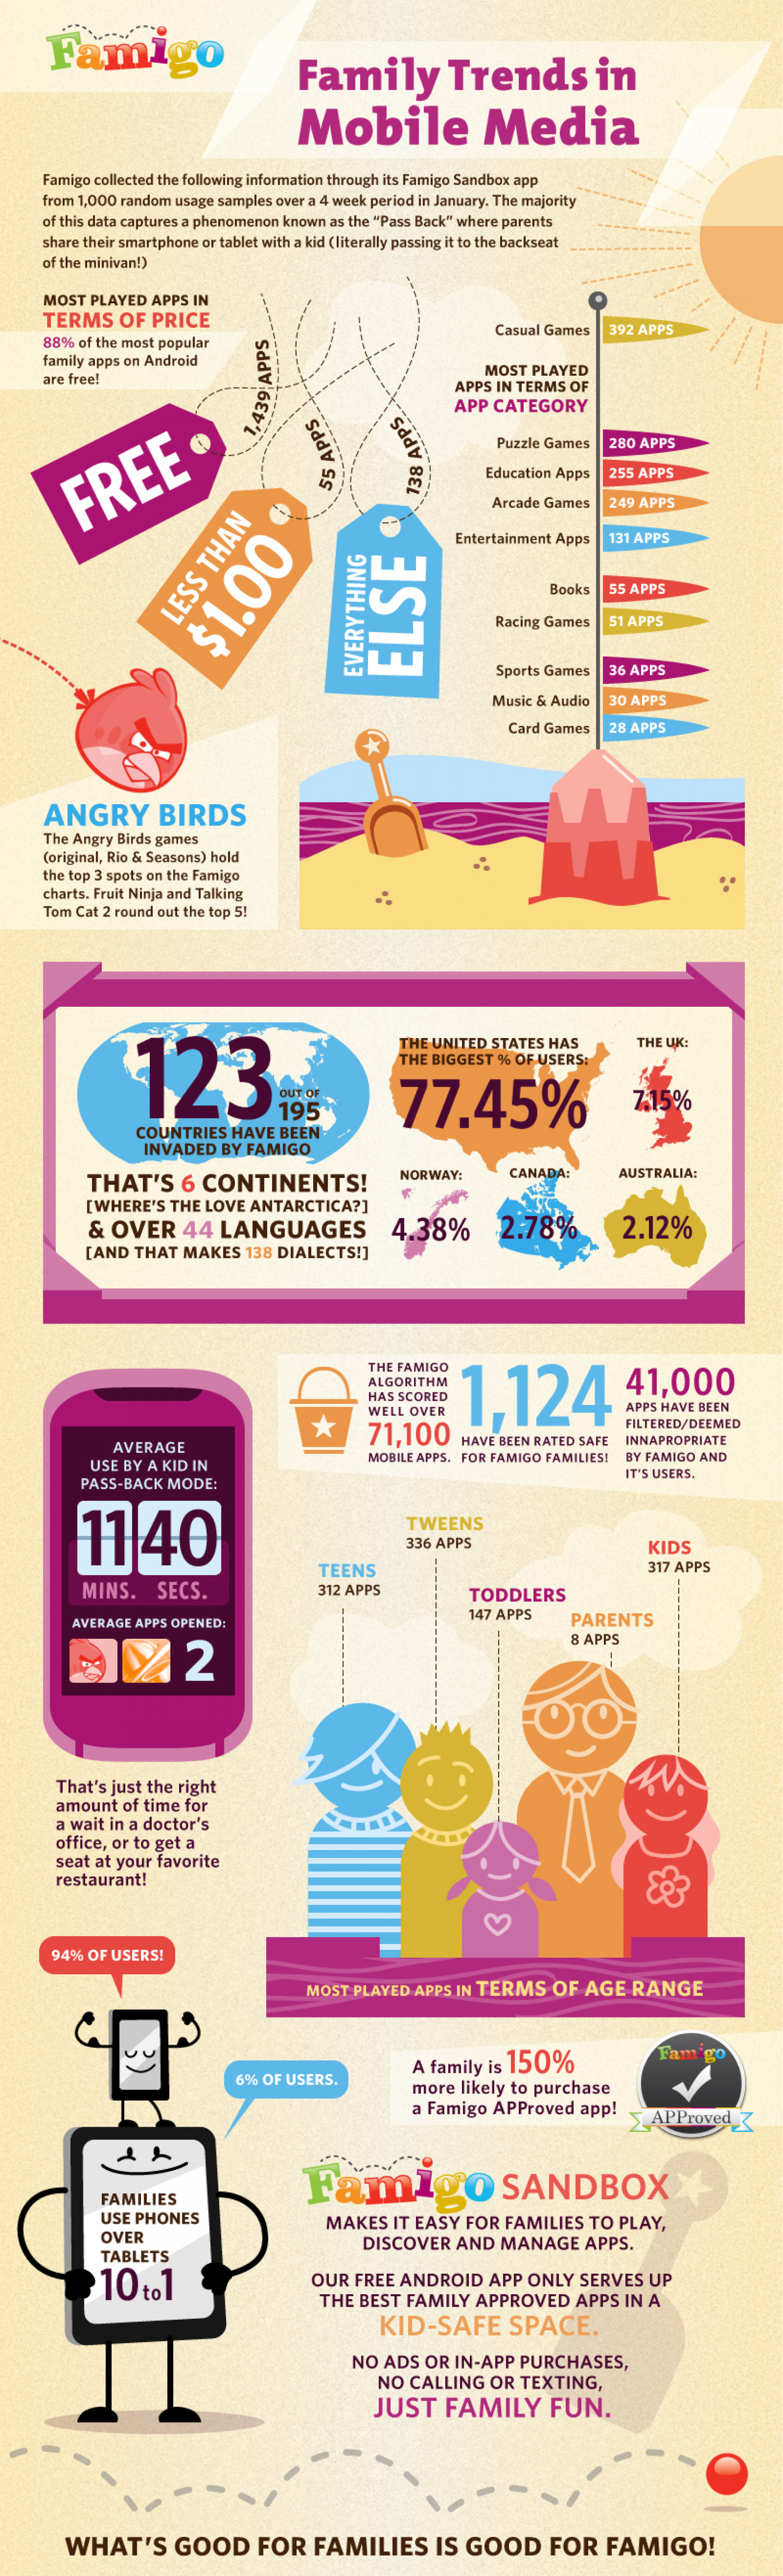 Family Trends in Mobile Media Infographic